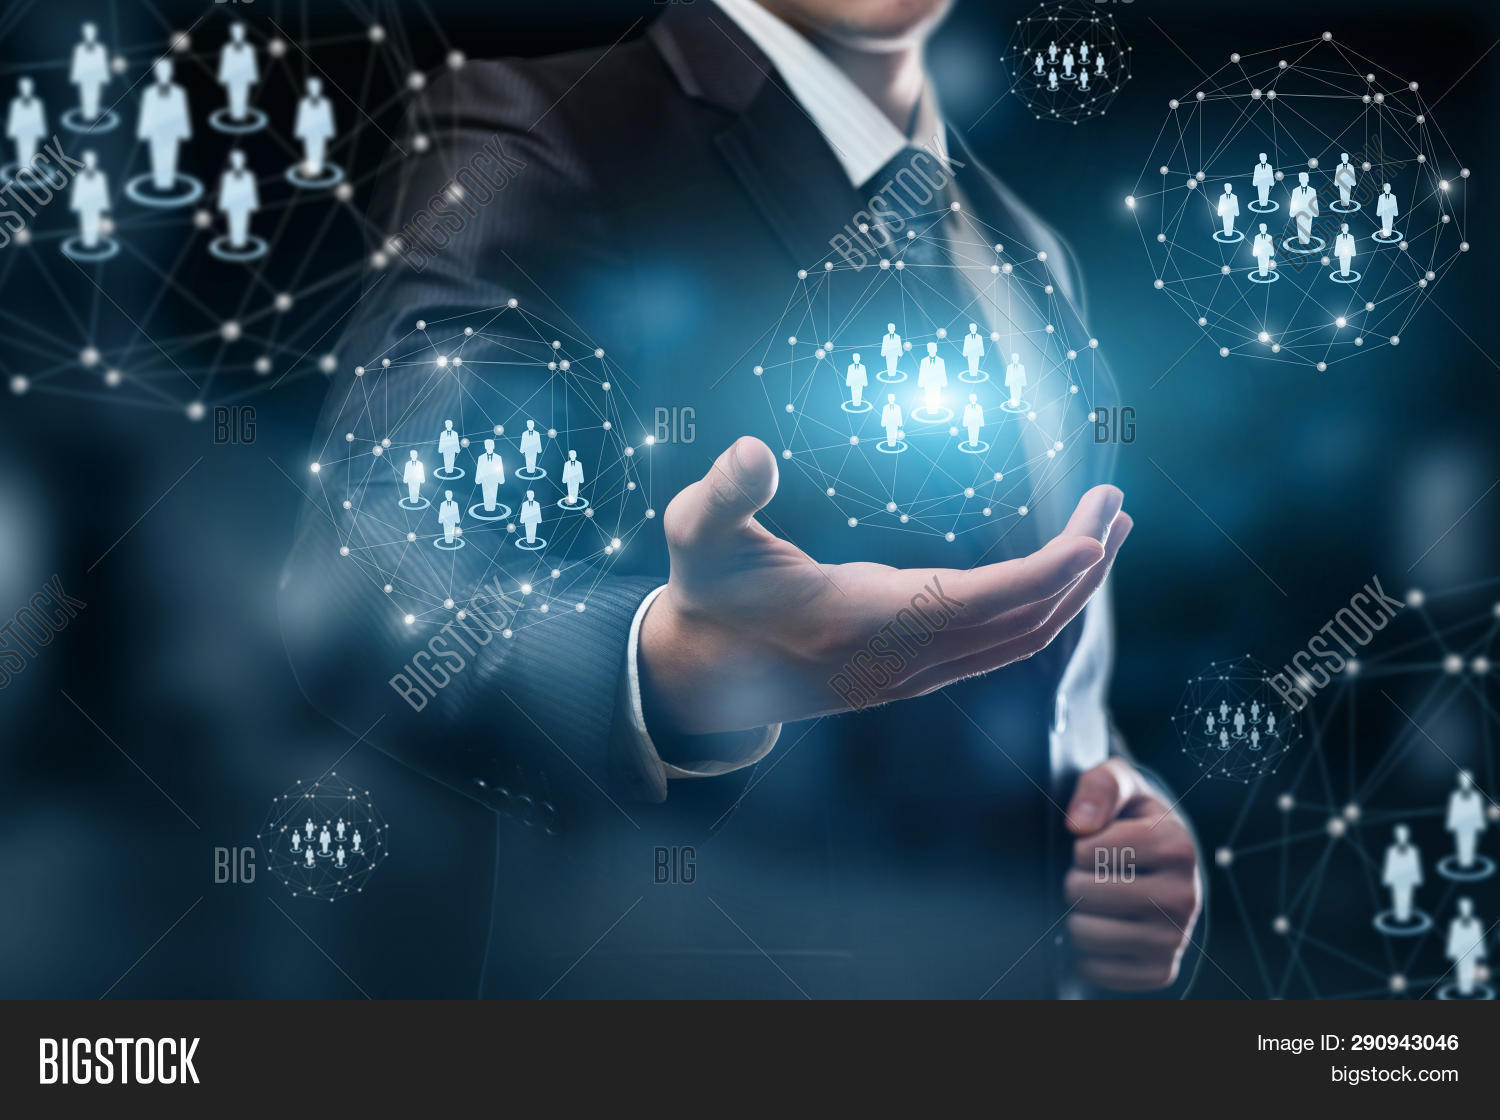 A Closeup Of A Businessman Holding A System Of Digital Spheres With Human Figure Models Inside. The